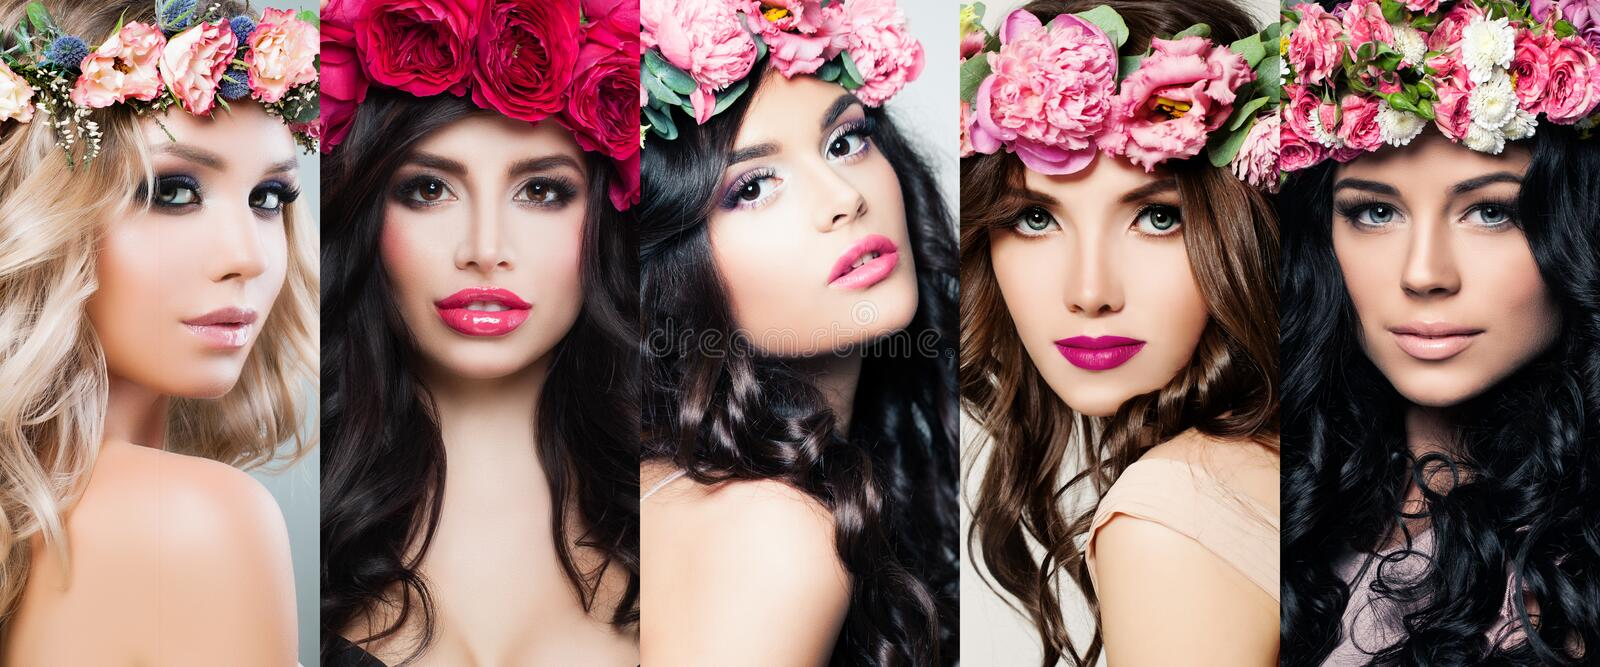 Beautiful women face set. Colorful flowers, makeup and long curly hair. Blossoms beauty bright colorful portraits stock images